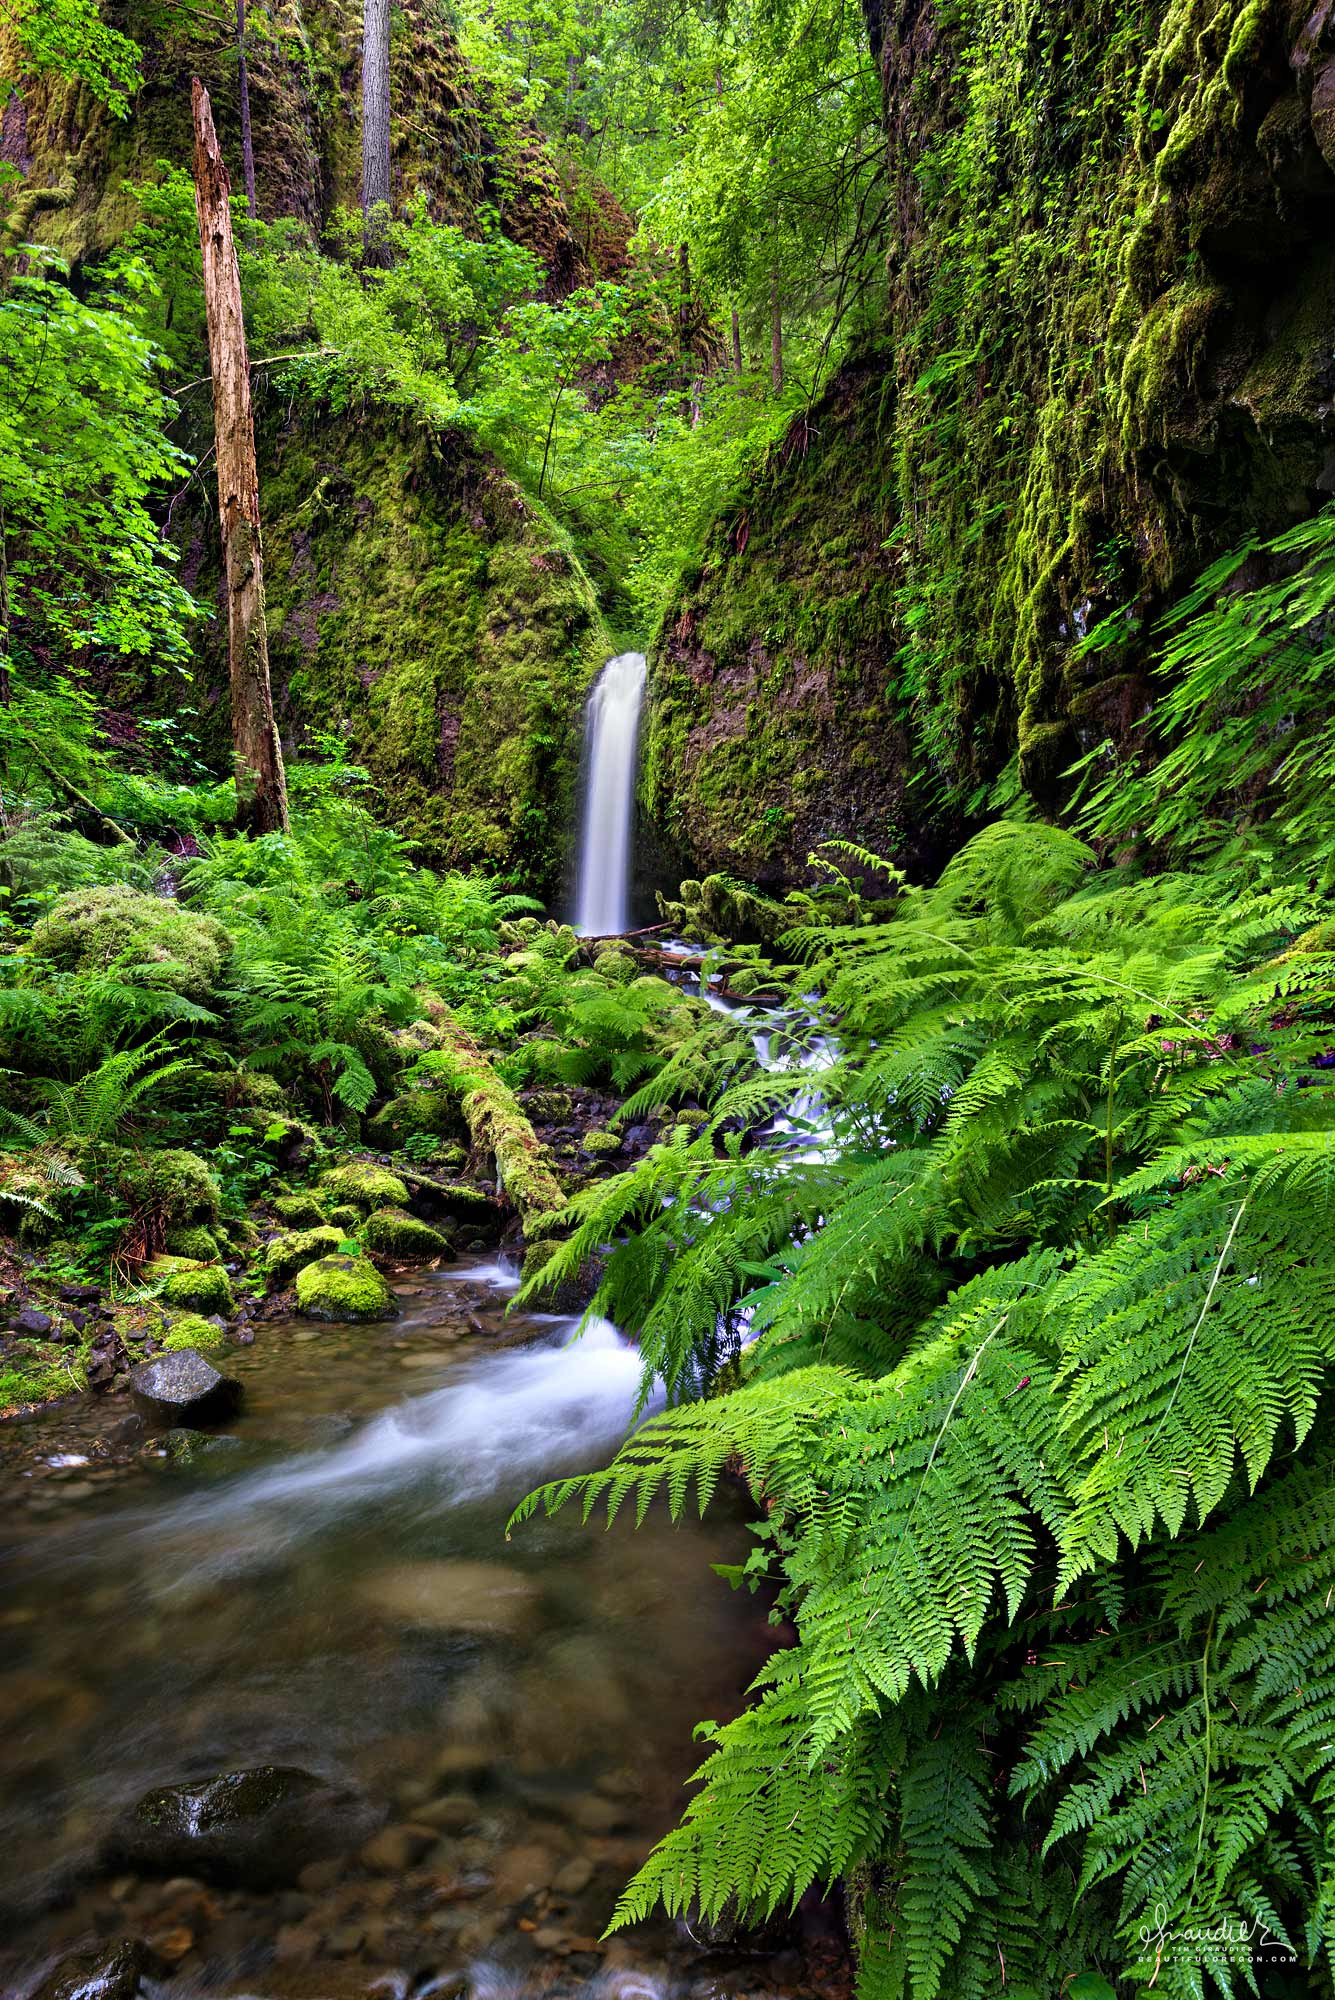 Mossy Grotto Falls along Ruckel Creek, hidden deep within a basalt canyon, this beautiful waterfall is nestled amongst Red Cedar, Doug-fir and Lady Ferns. Mount Hood National Forest, Hood River County, Columbia River Gorge National Scenic Area, Oregon.